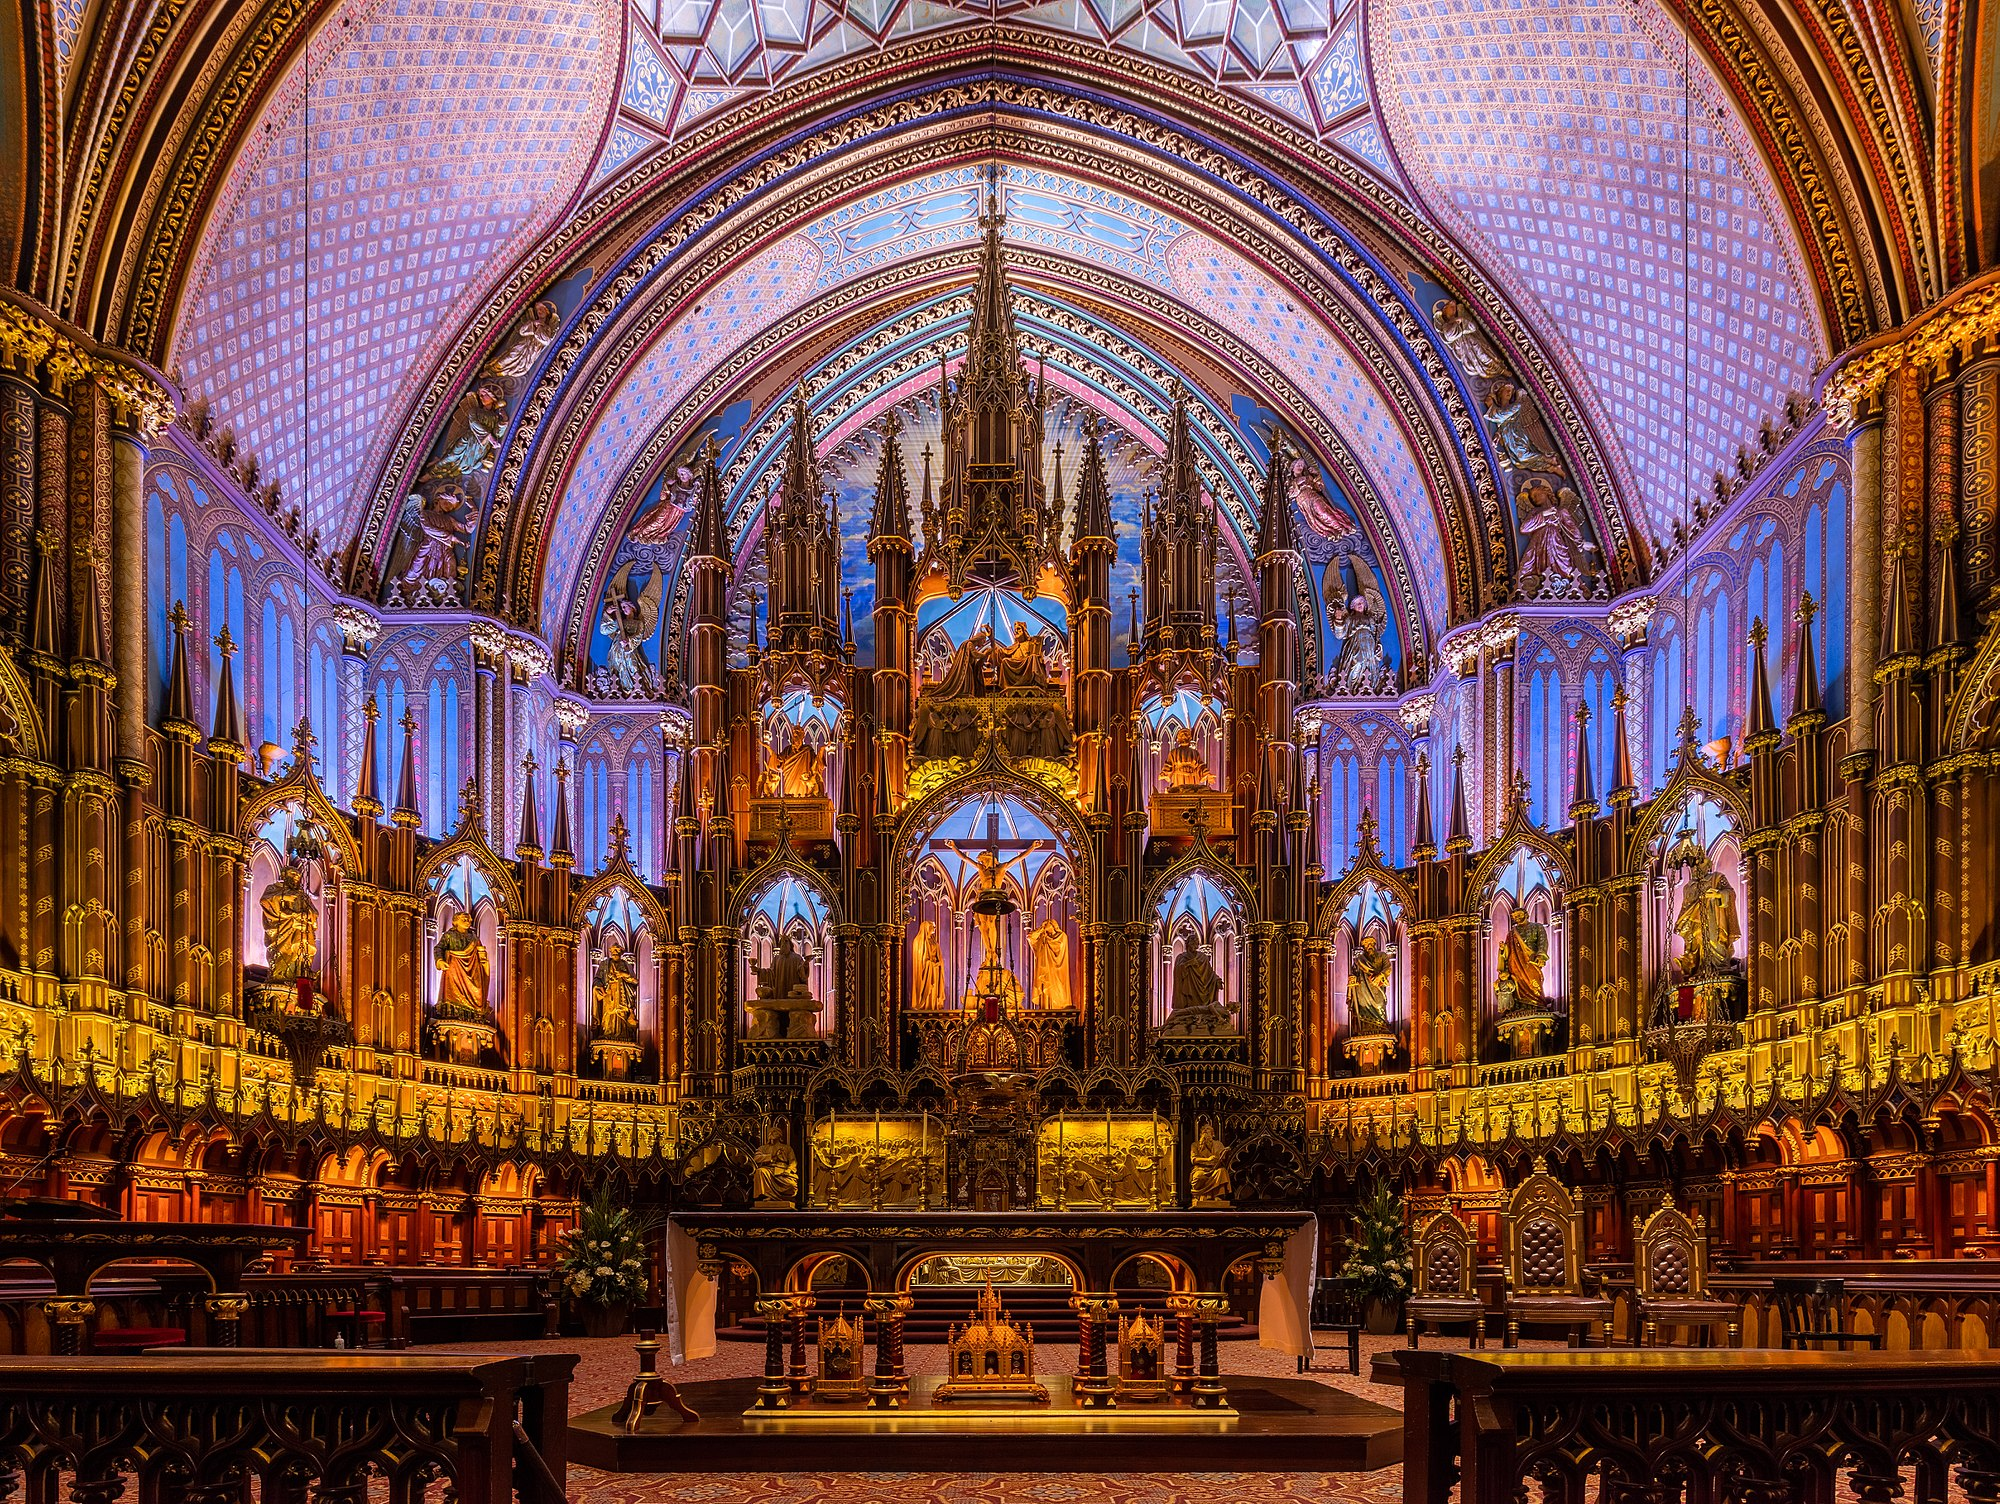 Interior of the Notre-Dame Basilica, located in the historic district of Old Montreal, in Montreal, Quebec, Canada. The interior of the basilica, built in Gothic Revival style, is impressive with vivid colors, stars and filled with hundreds of intricate wooden carvings and several religious statues. It was built between 1823 and 1829 after a design of James O'Donnell and it has become one of the landmarks of the city.